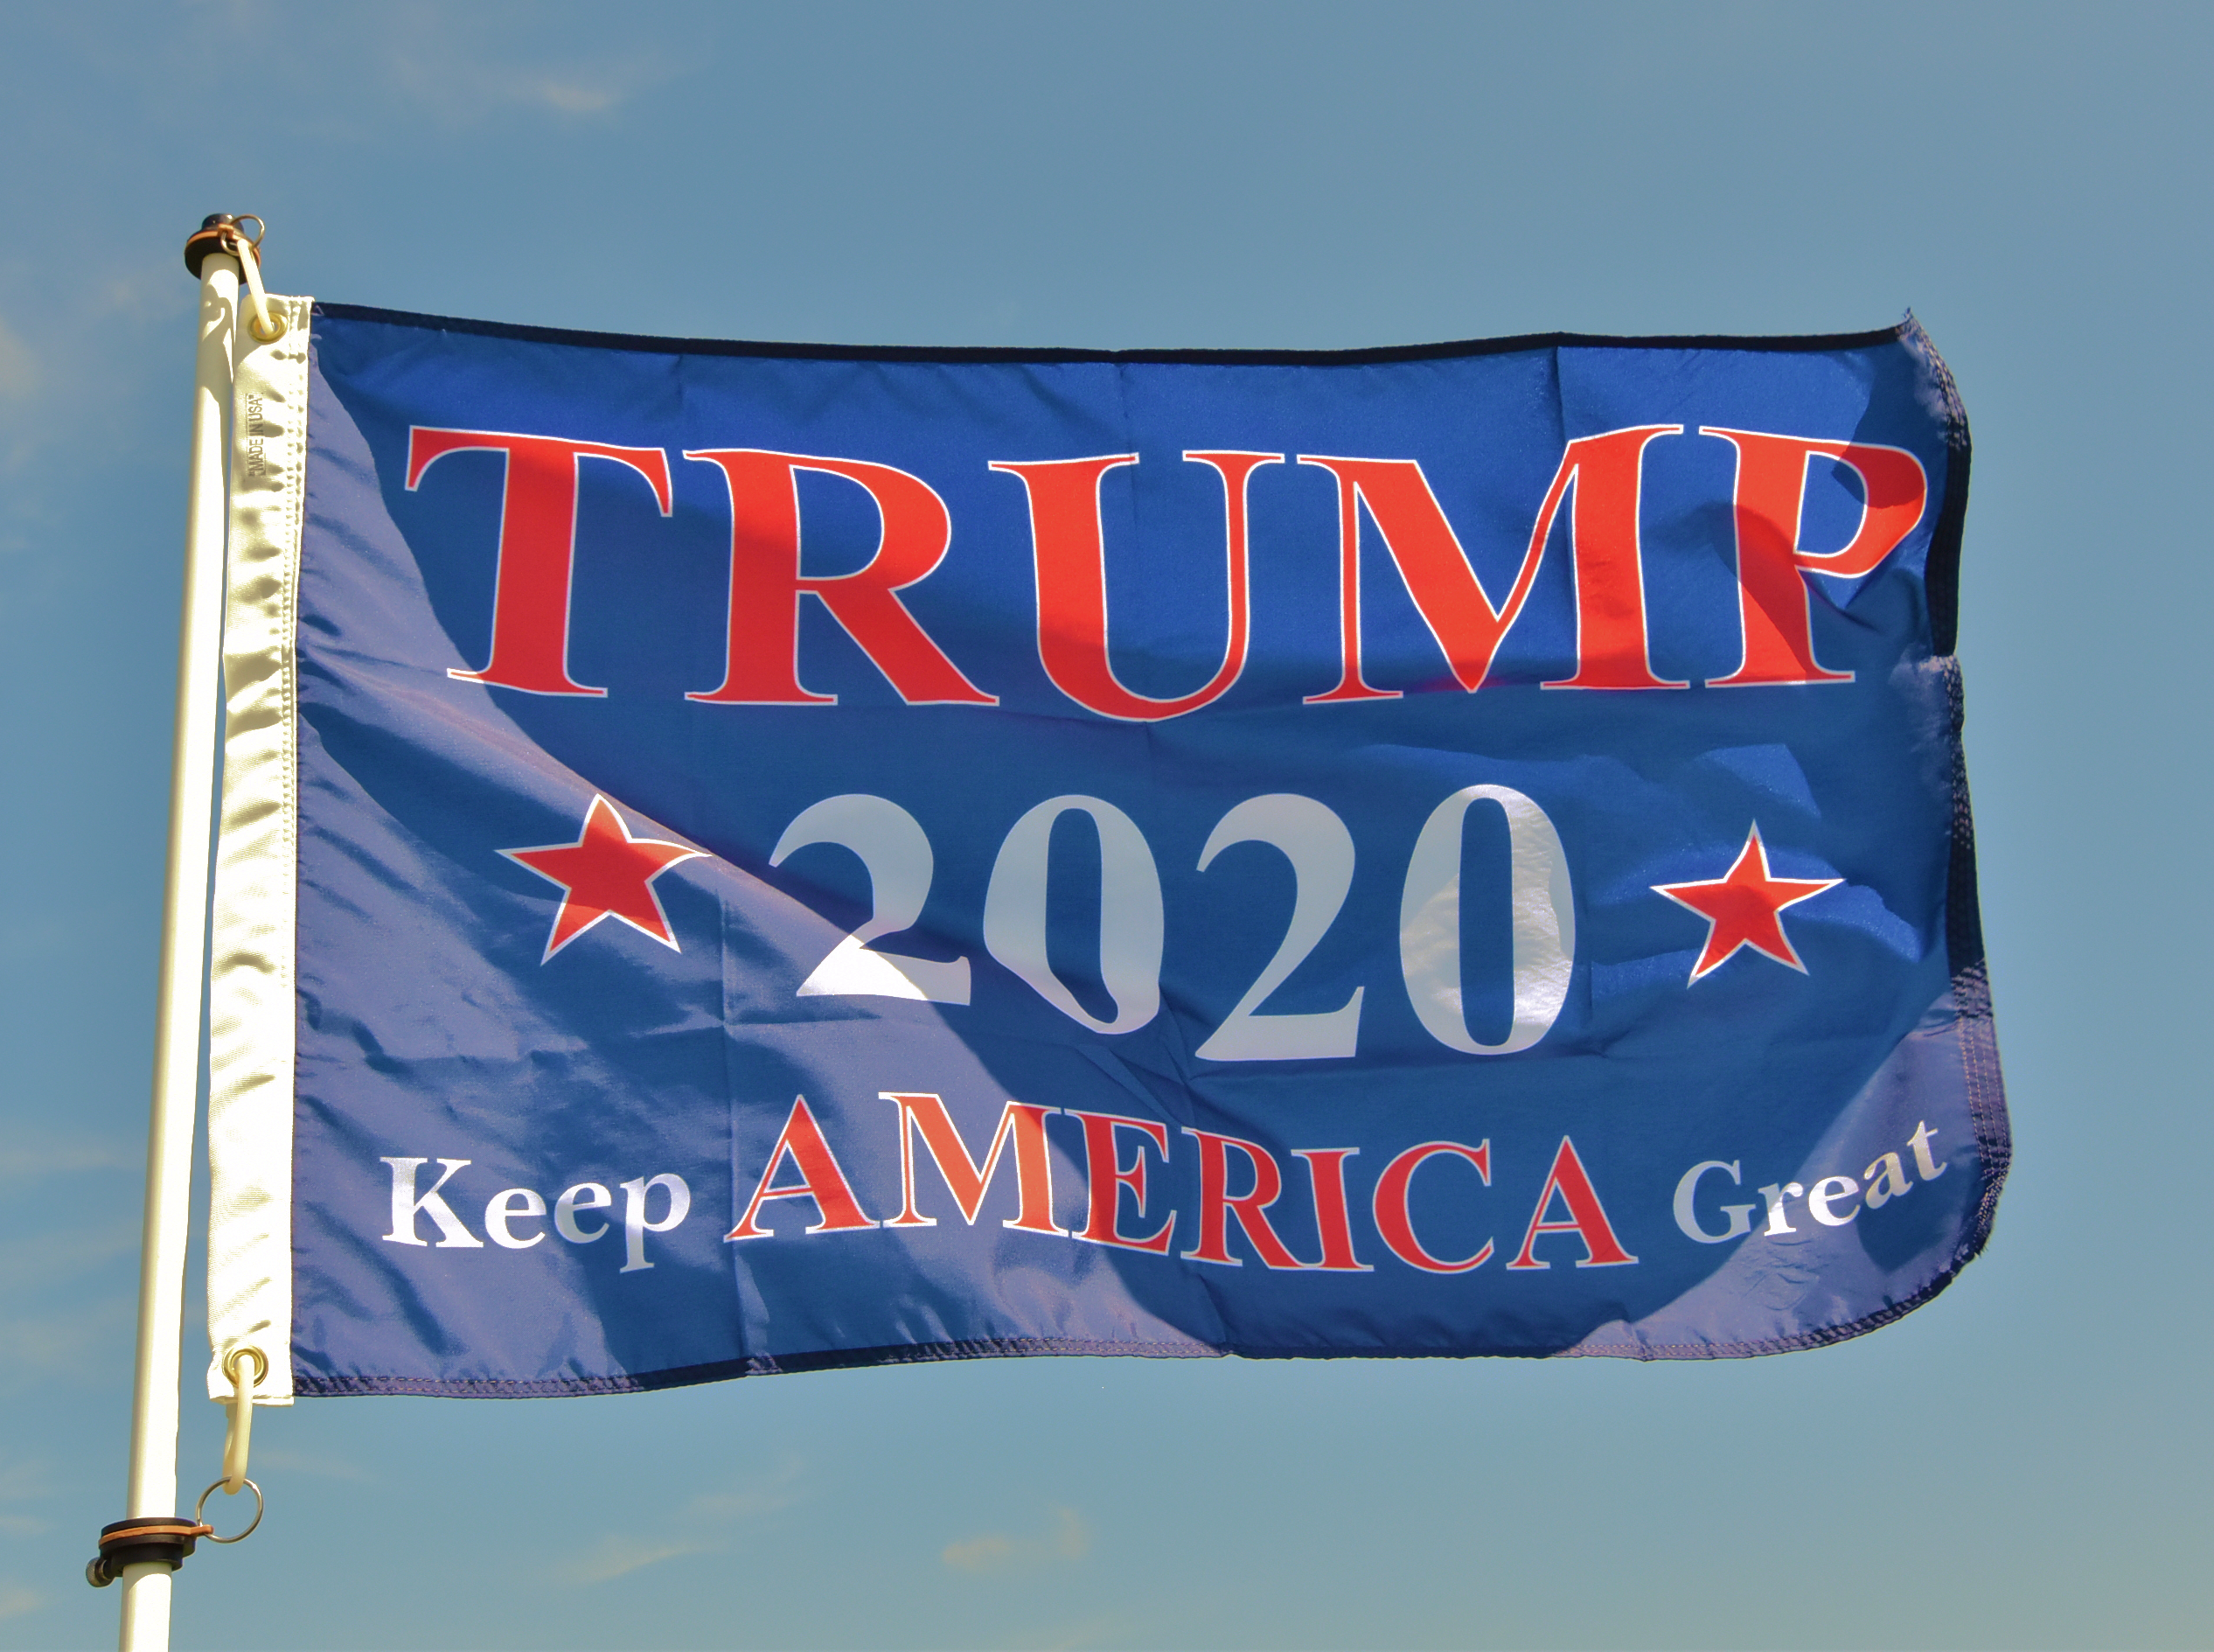 Business Owner in Minnesota says He's Willing to Pay the Fines or Go To Jail for Flying His Trump Flag